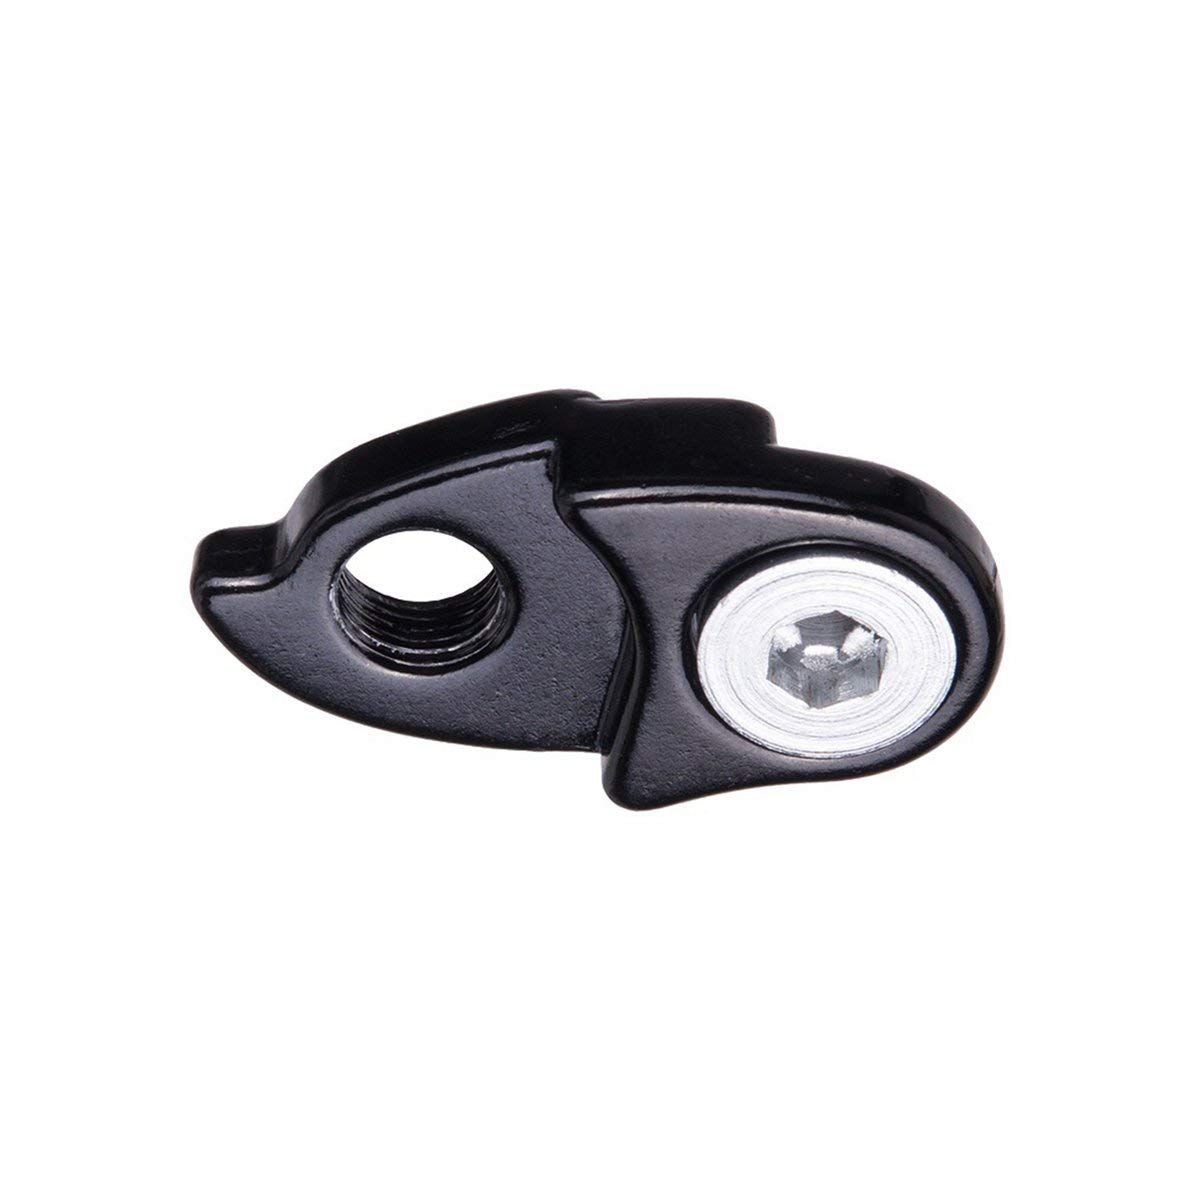 Rear Derailleur Hanger Bicycle Cycling Extender Hook Accessories Durable